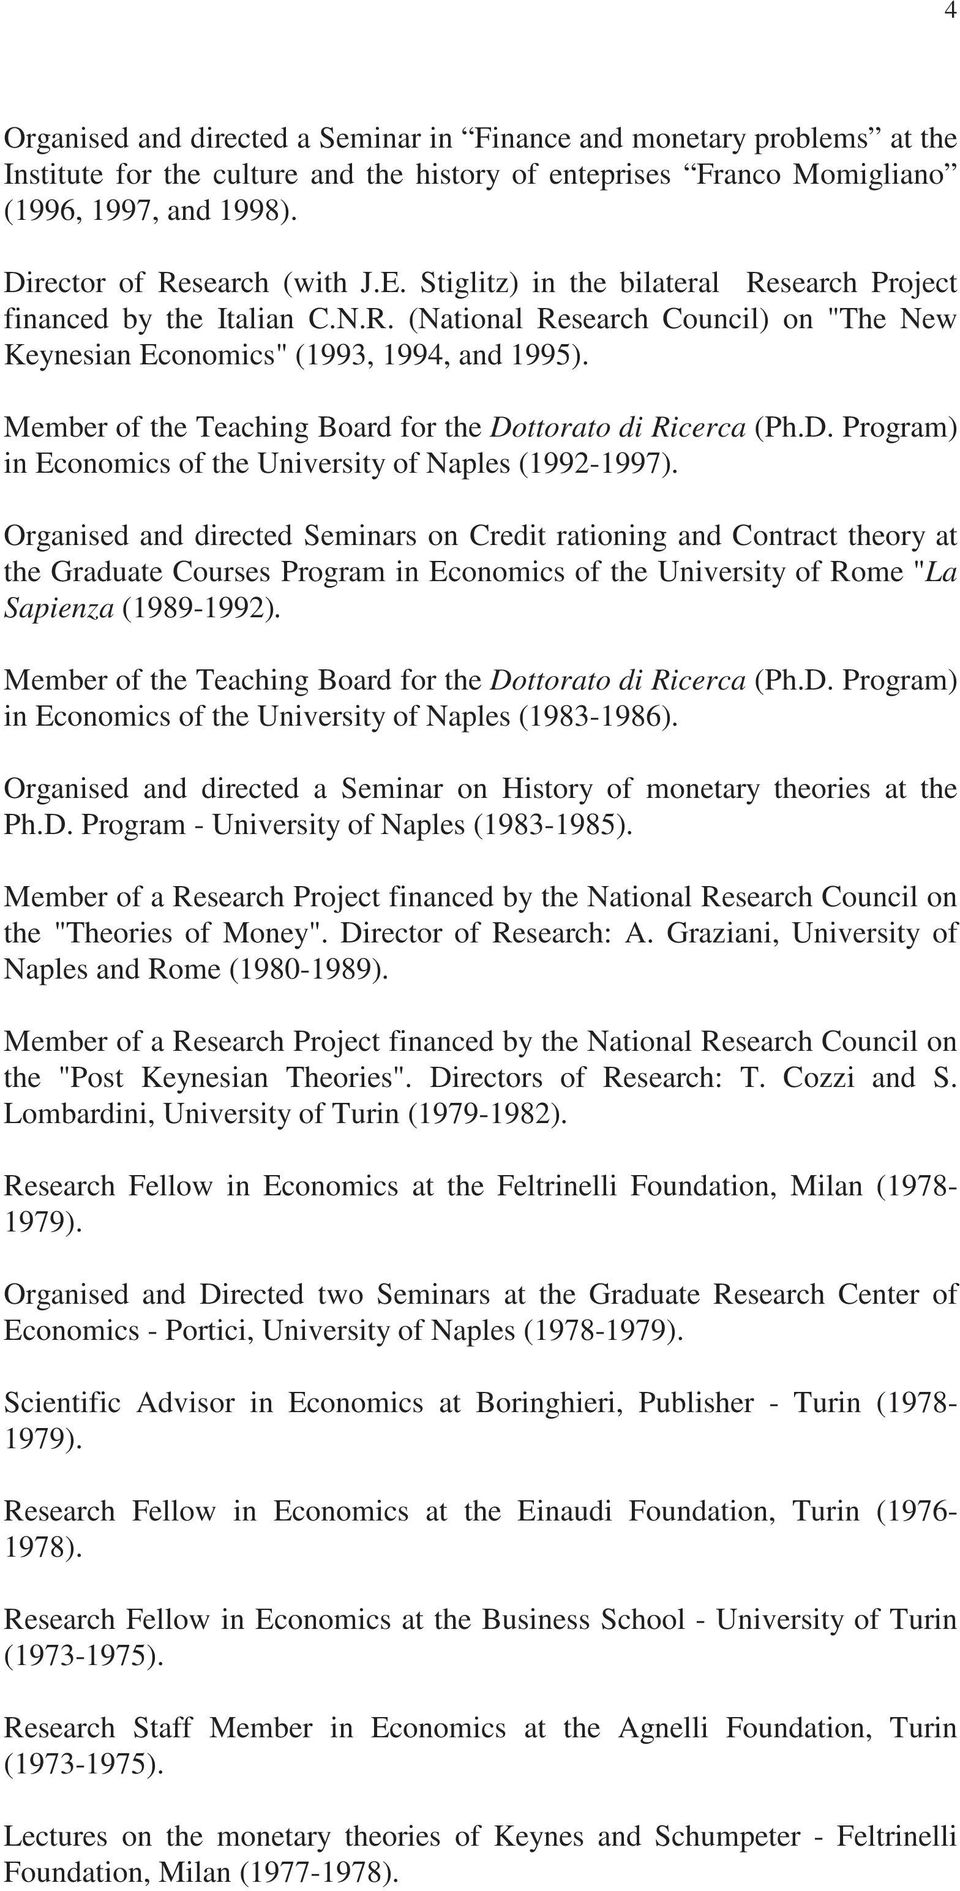 Member of the Teaching Board for the Dottorato di Ricerca (Ph.D. Program) in Economics of the University of Naples (1992-1997).